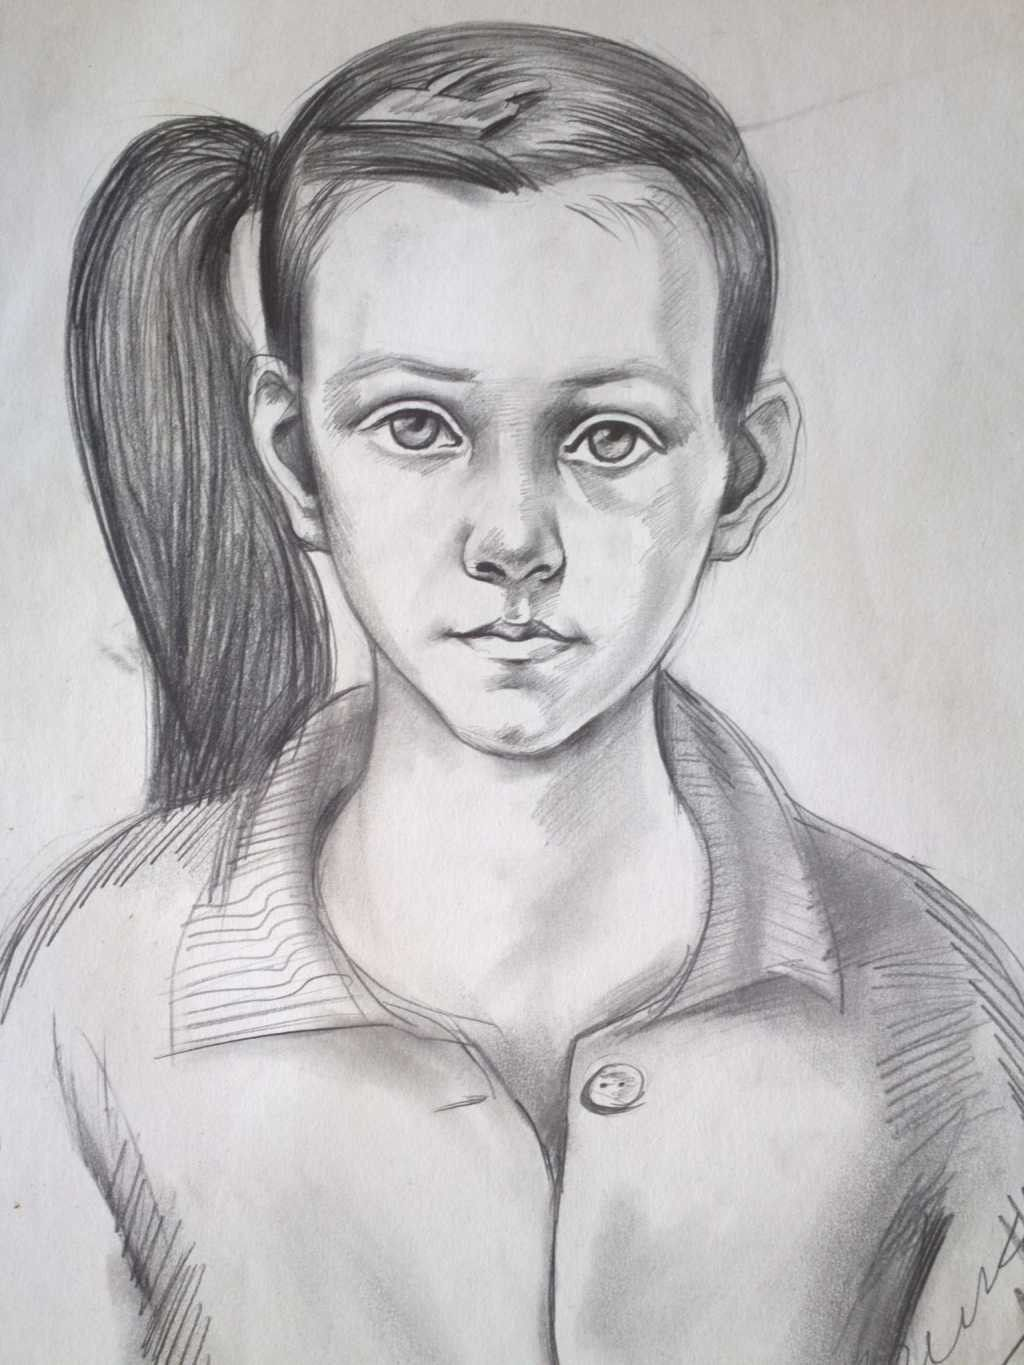 Portrait of a girl drawing the image for Girl drawings in pencil